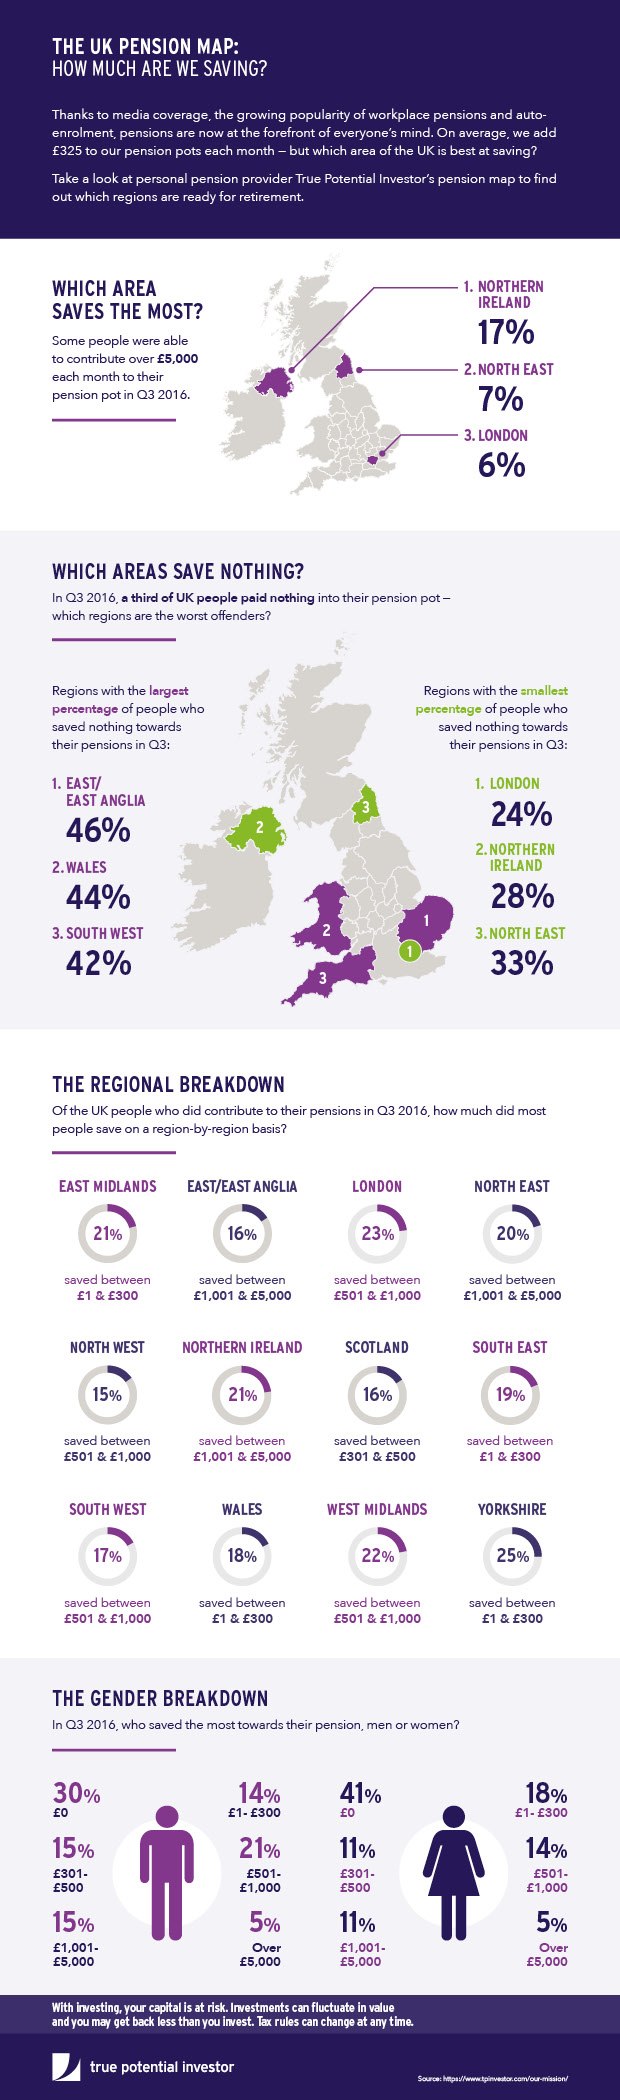 Pensions Map Infographic: How Much Is The UK Saving?